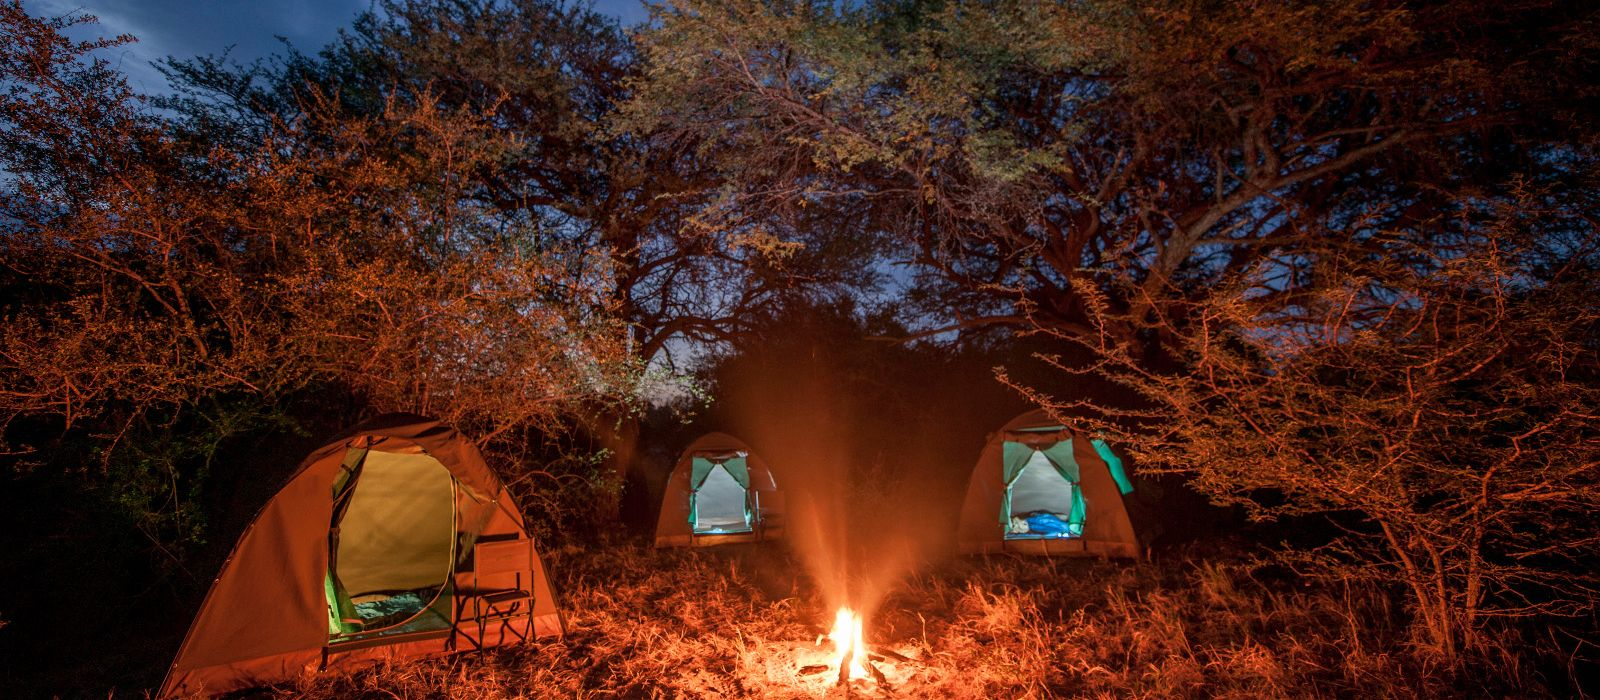 Hotel Bushways Mobile Bush Camp Botswana